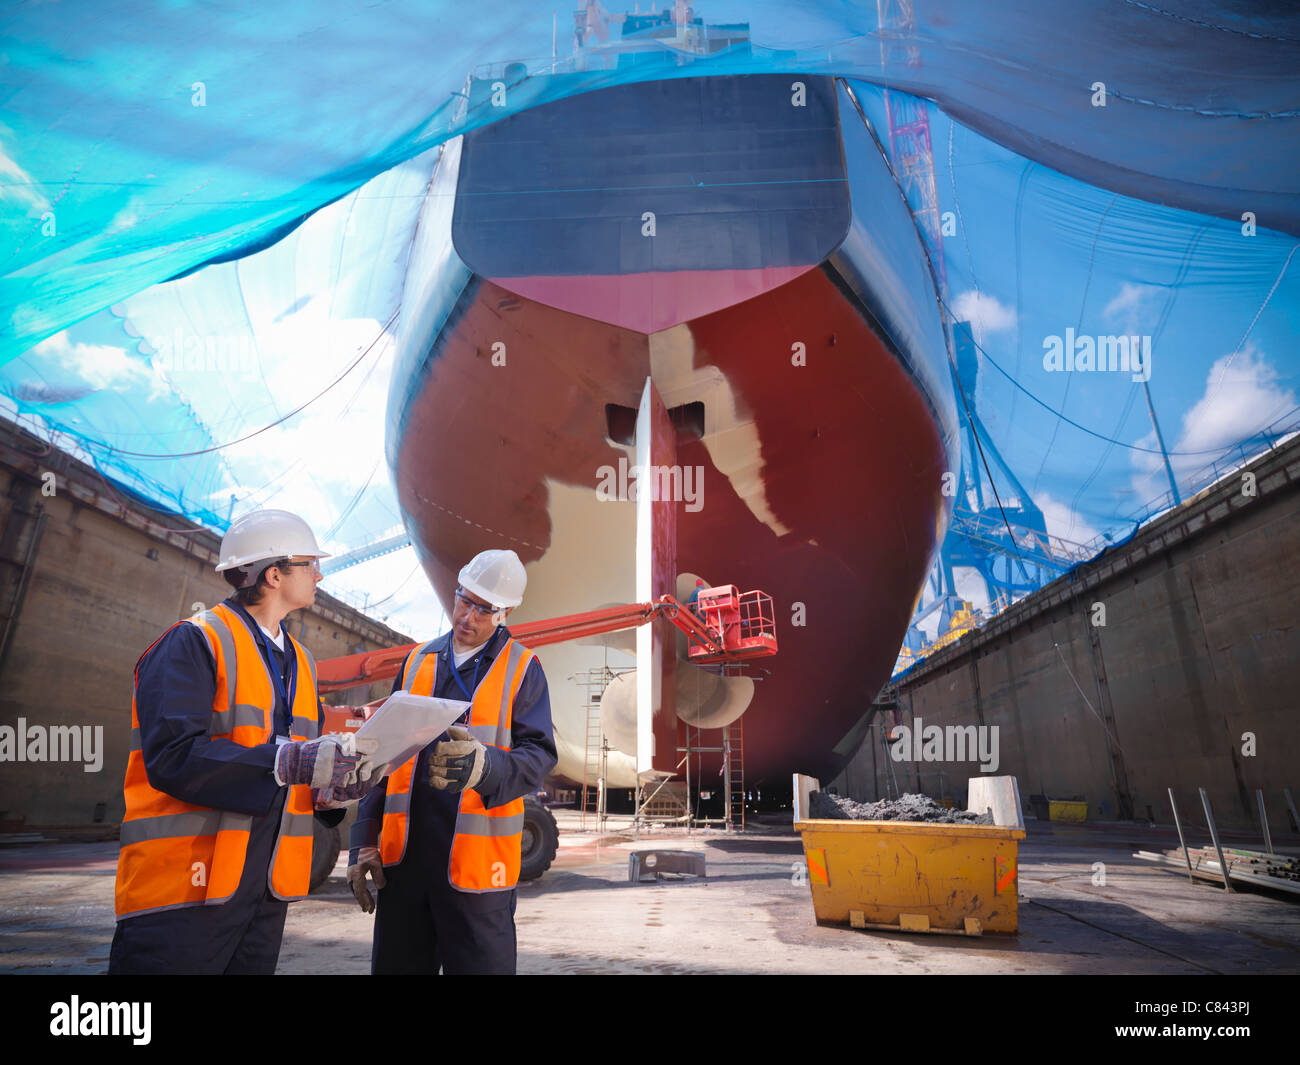 Workers talking at shipbuilding site - Stock Image